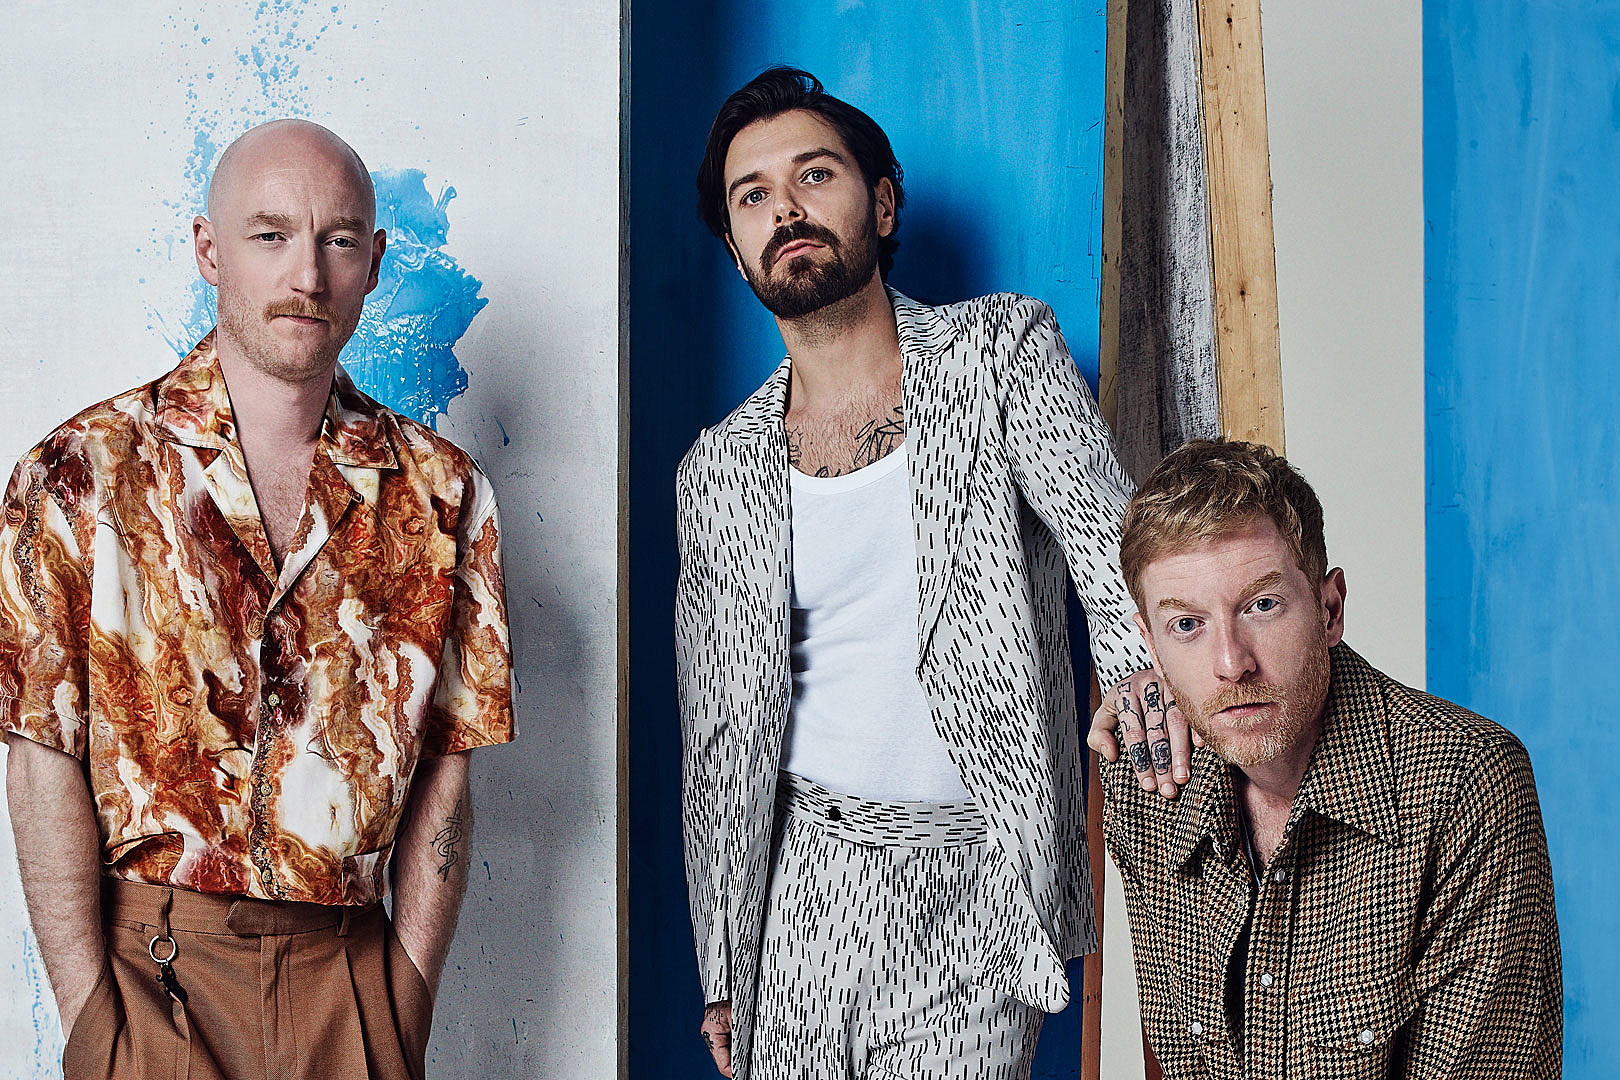 Biffy Clyro's New Song 'Instant History' Is Most Pop Moment Yet